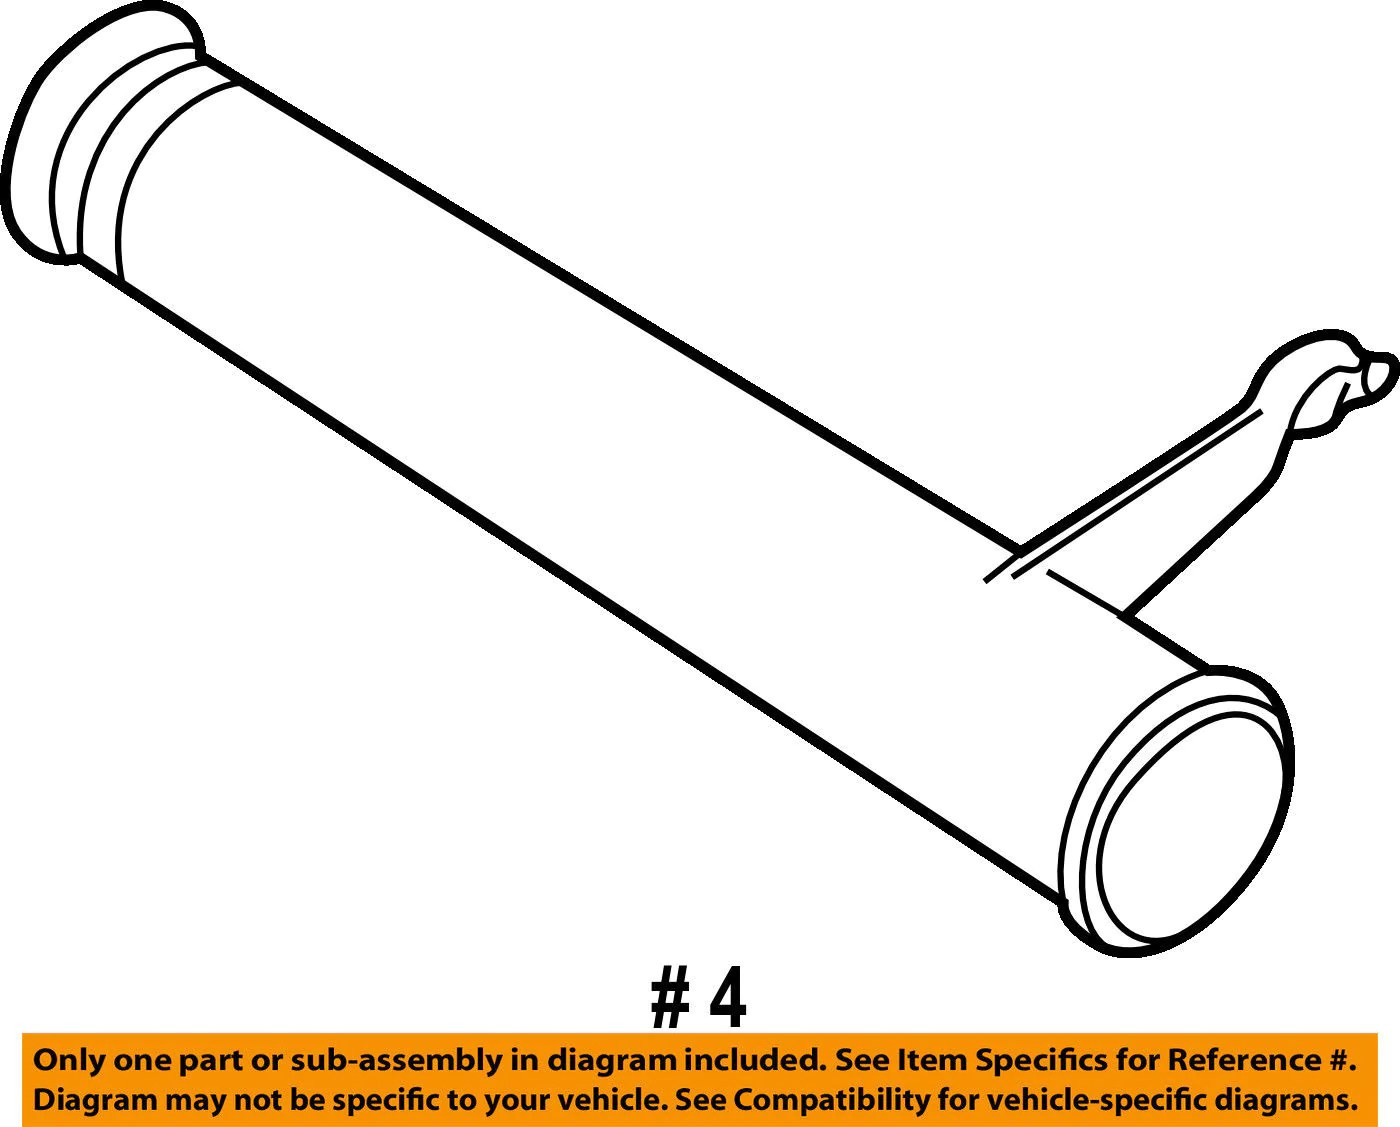 hight resolution of  cadillac catera cts saturn vue l ls lw series thermostat housing tube